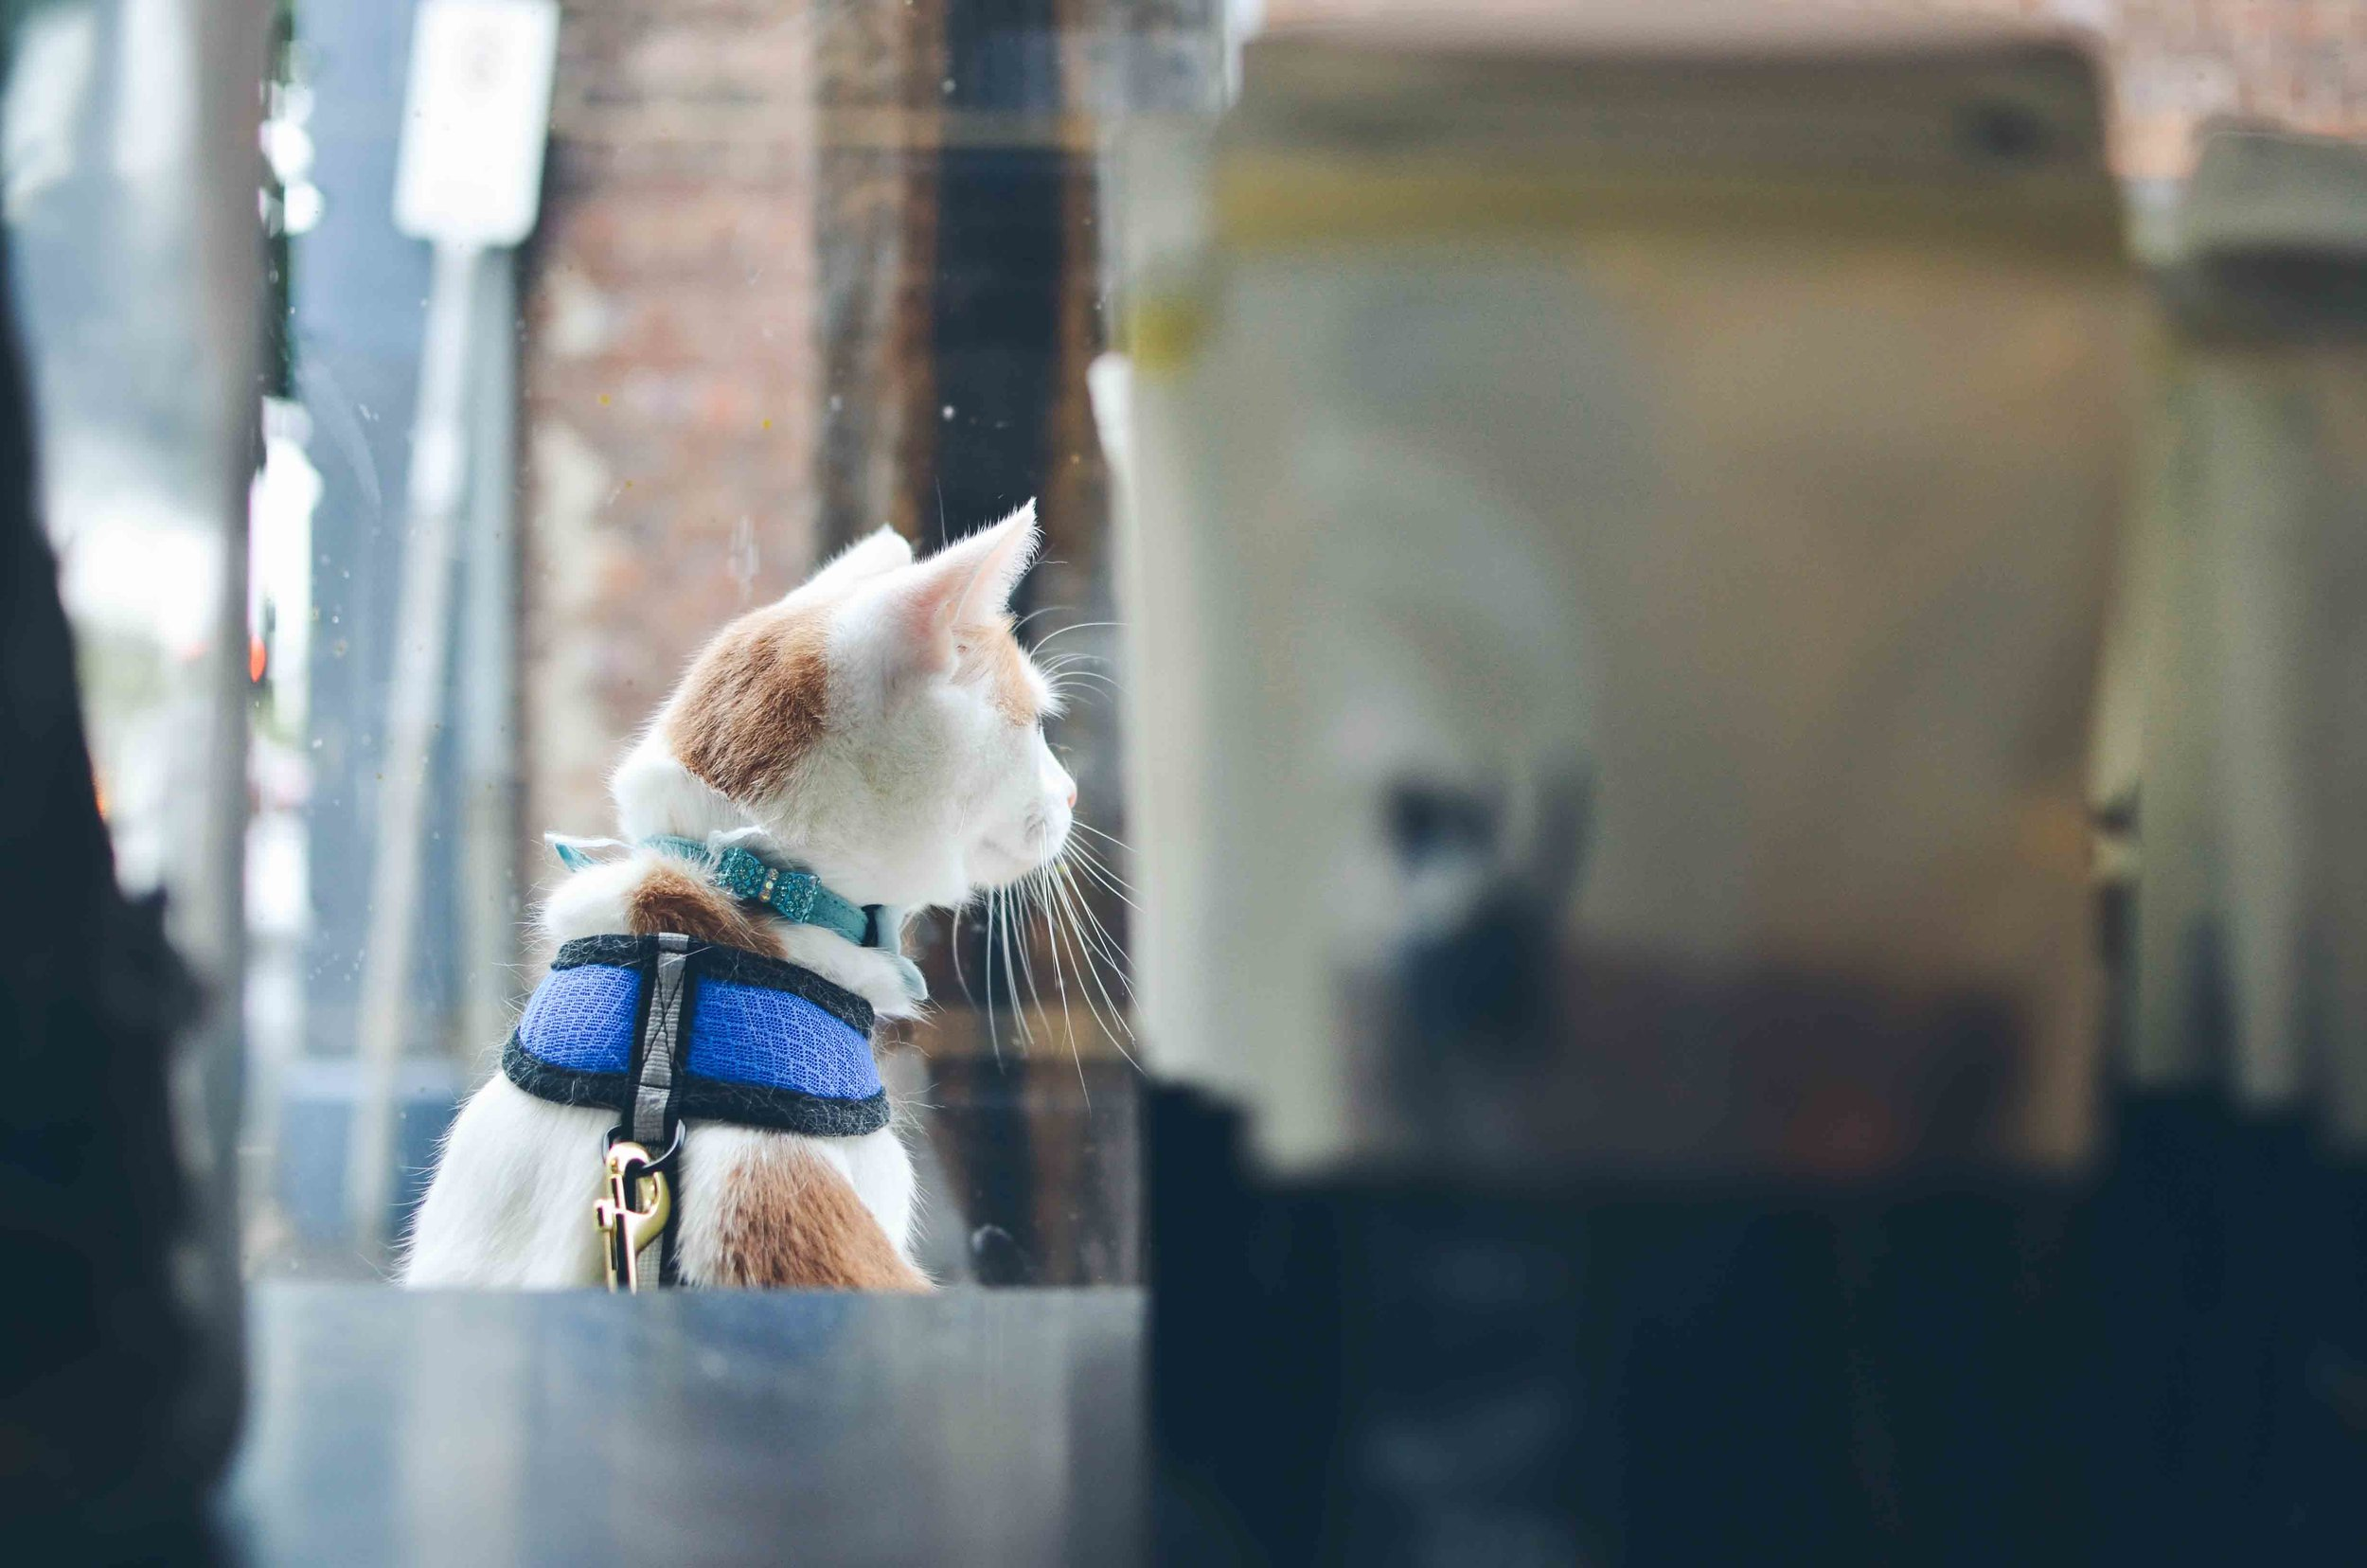 Lumos looking out the window at The Pet Grocer